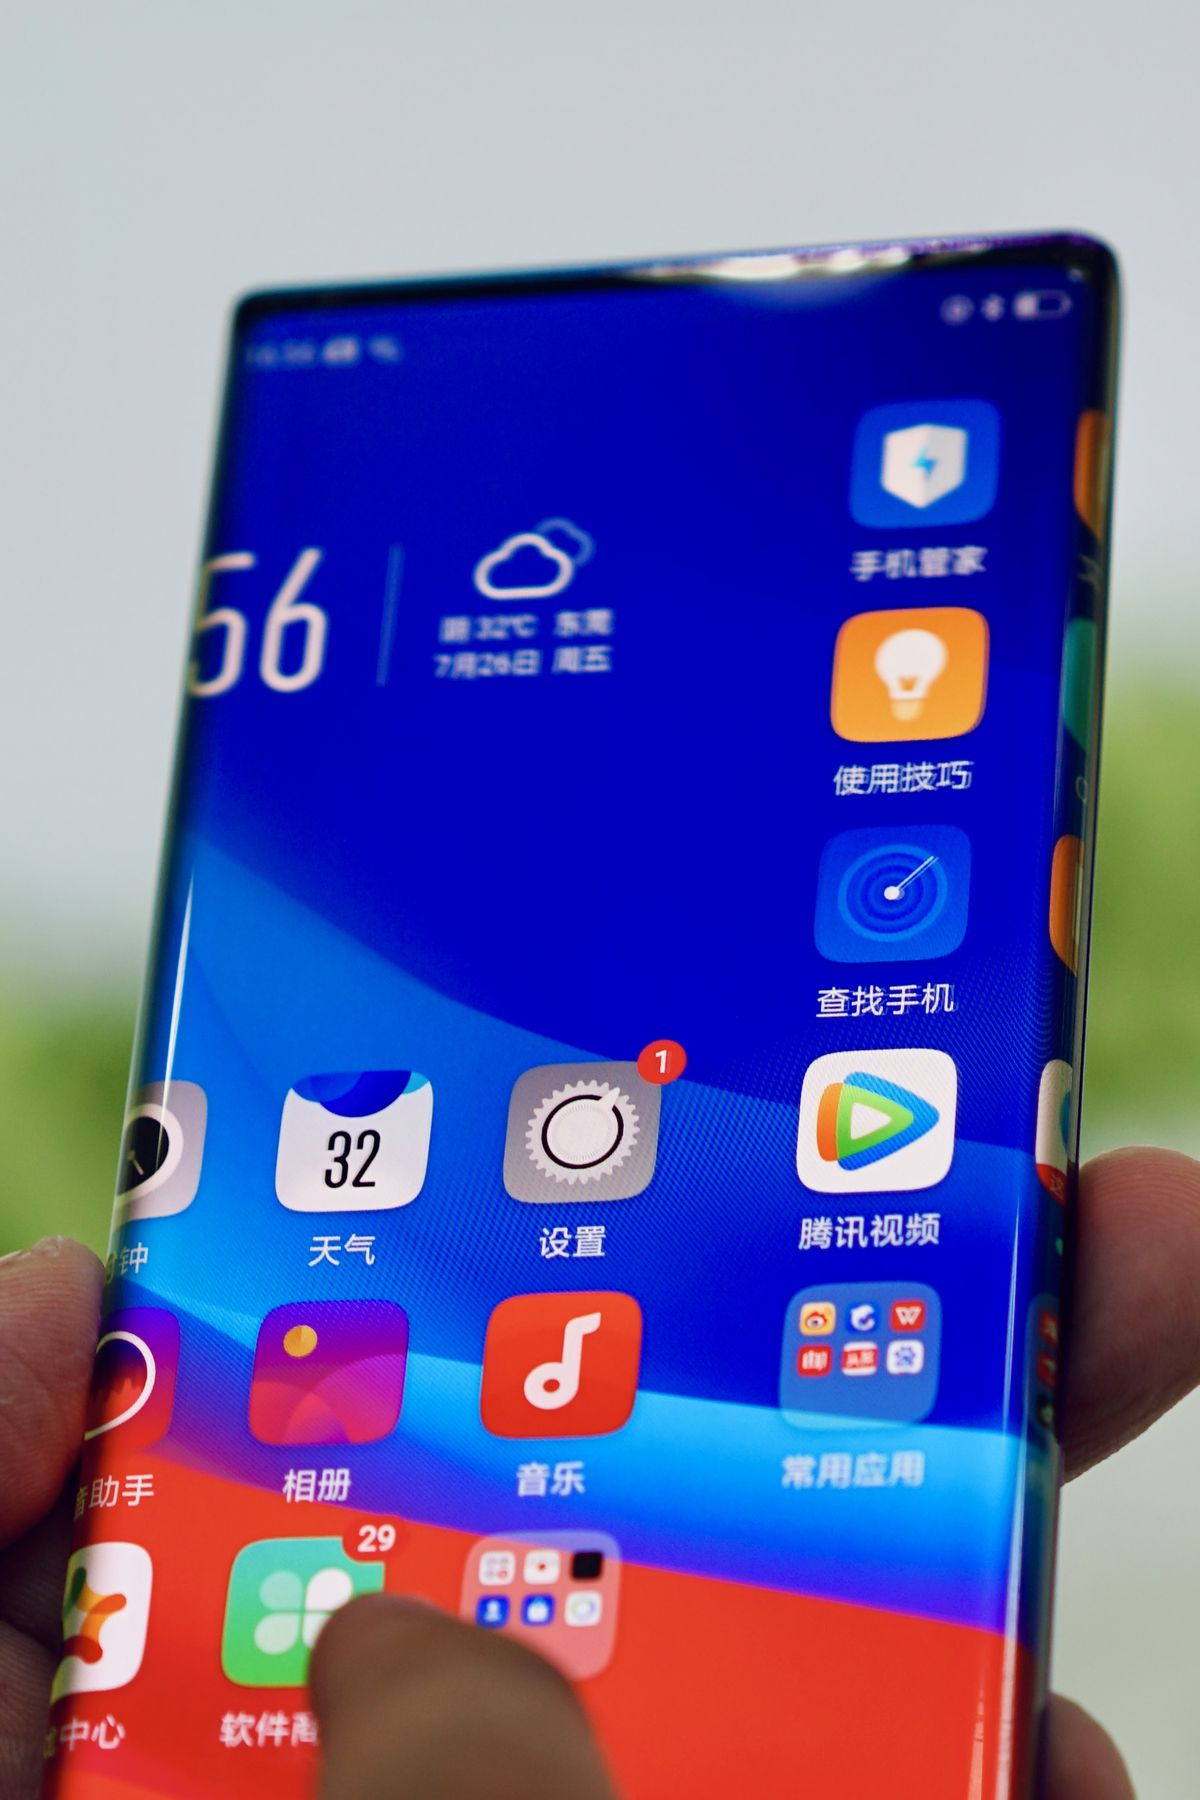 Oppo shows off 'waterfall screen' phone with ultra-curved